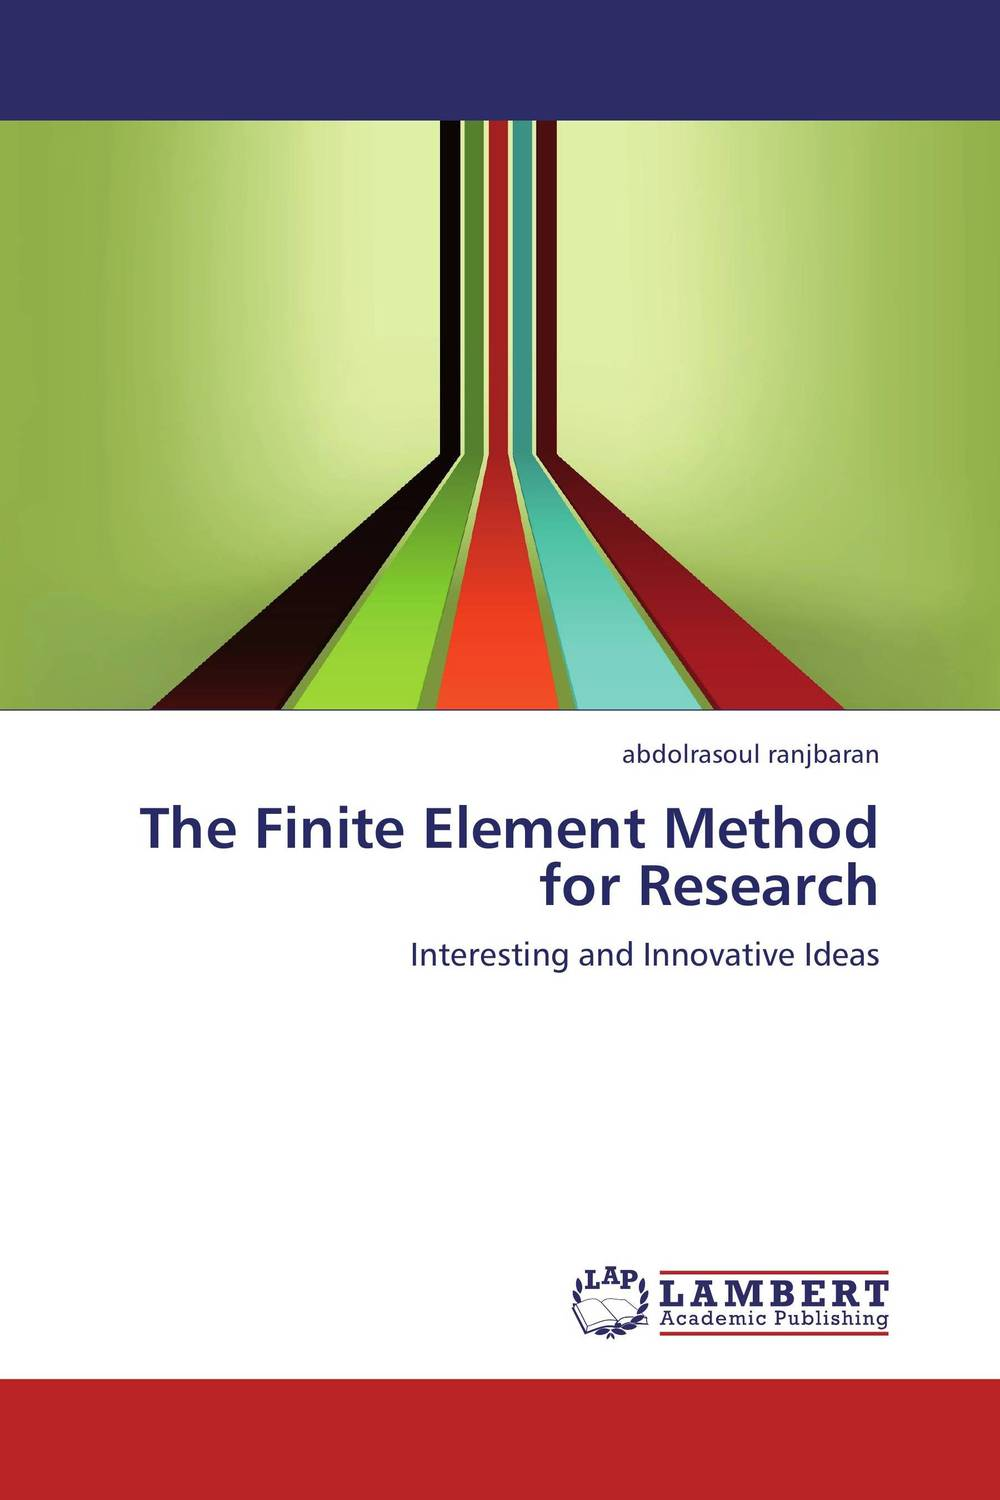 The Finite Element Method for Research darlington hove the finite element analysis of a composite sandwich beam